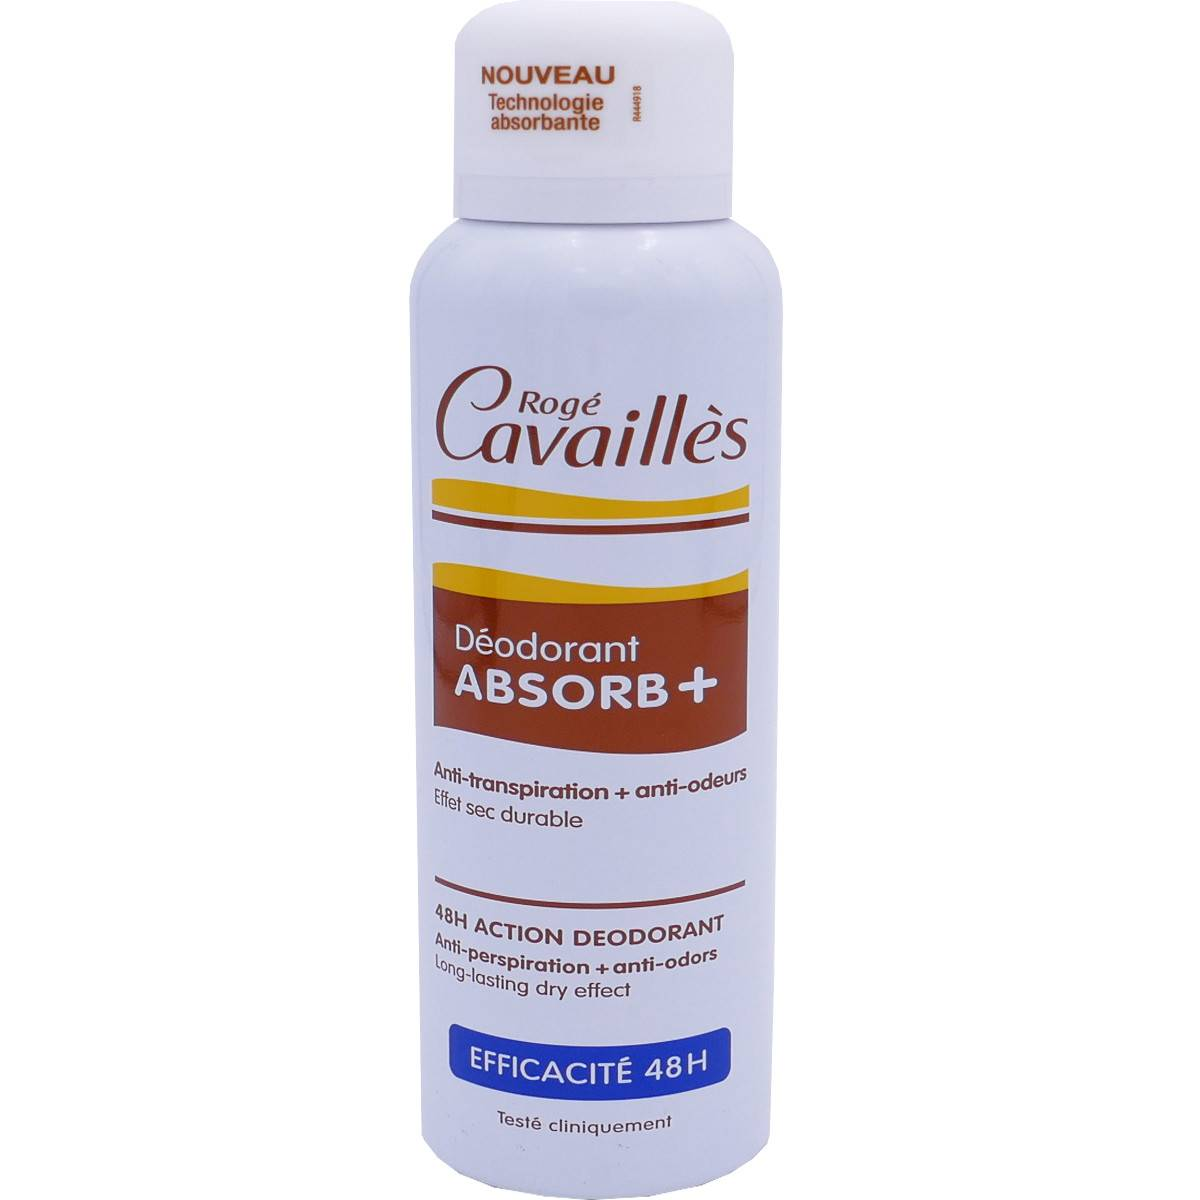 Roge cavailles absorb+ anti-transpirant femme 150ml